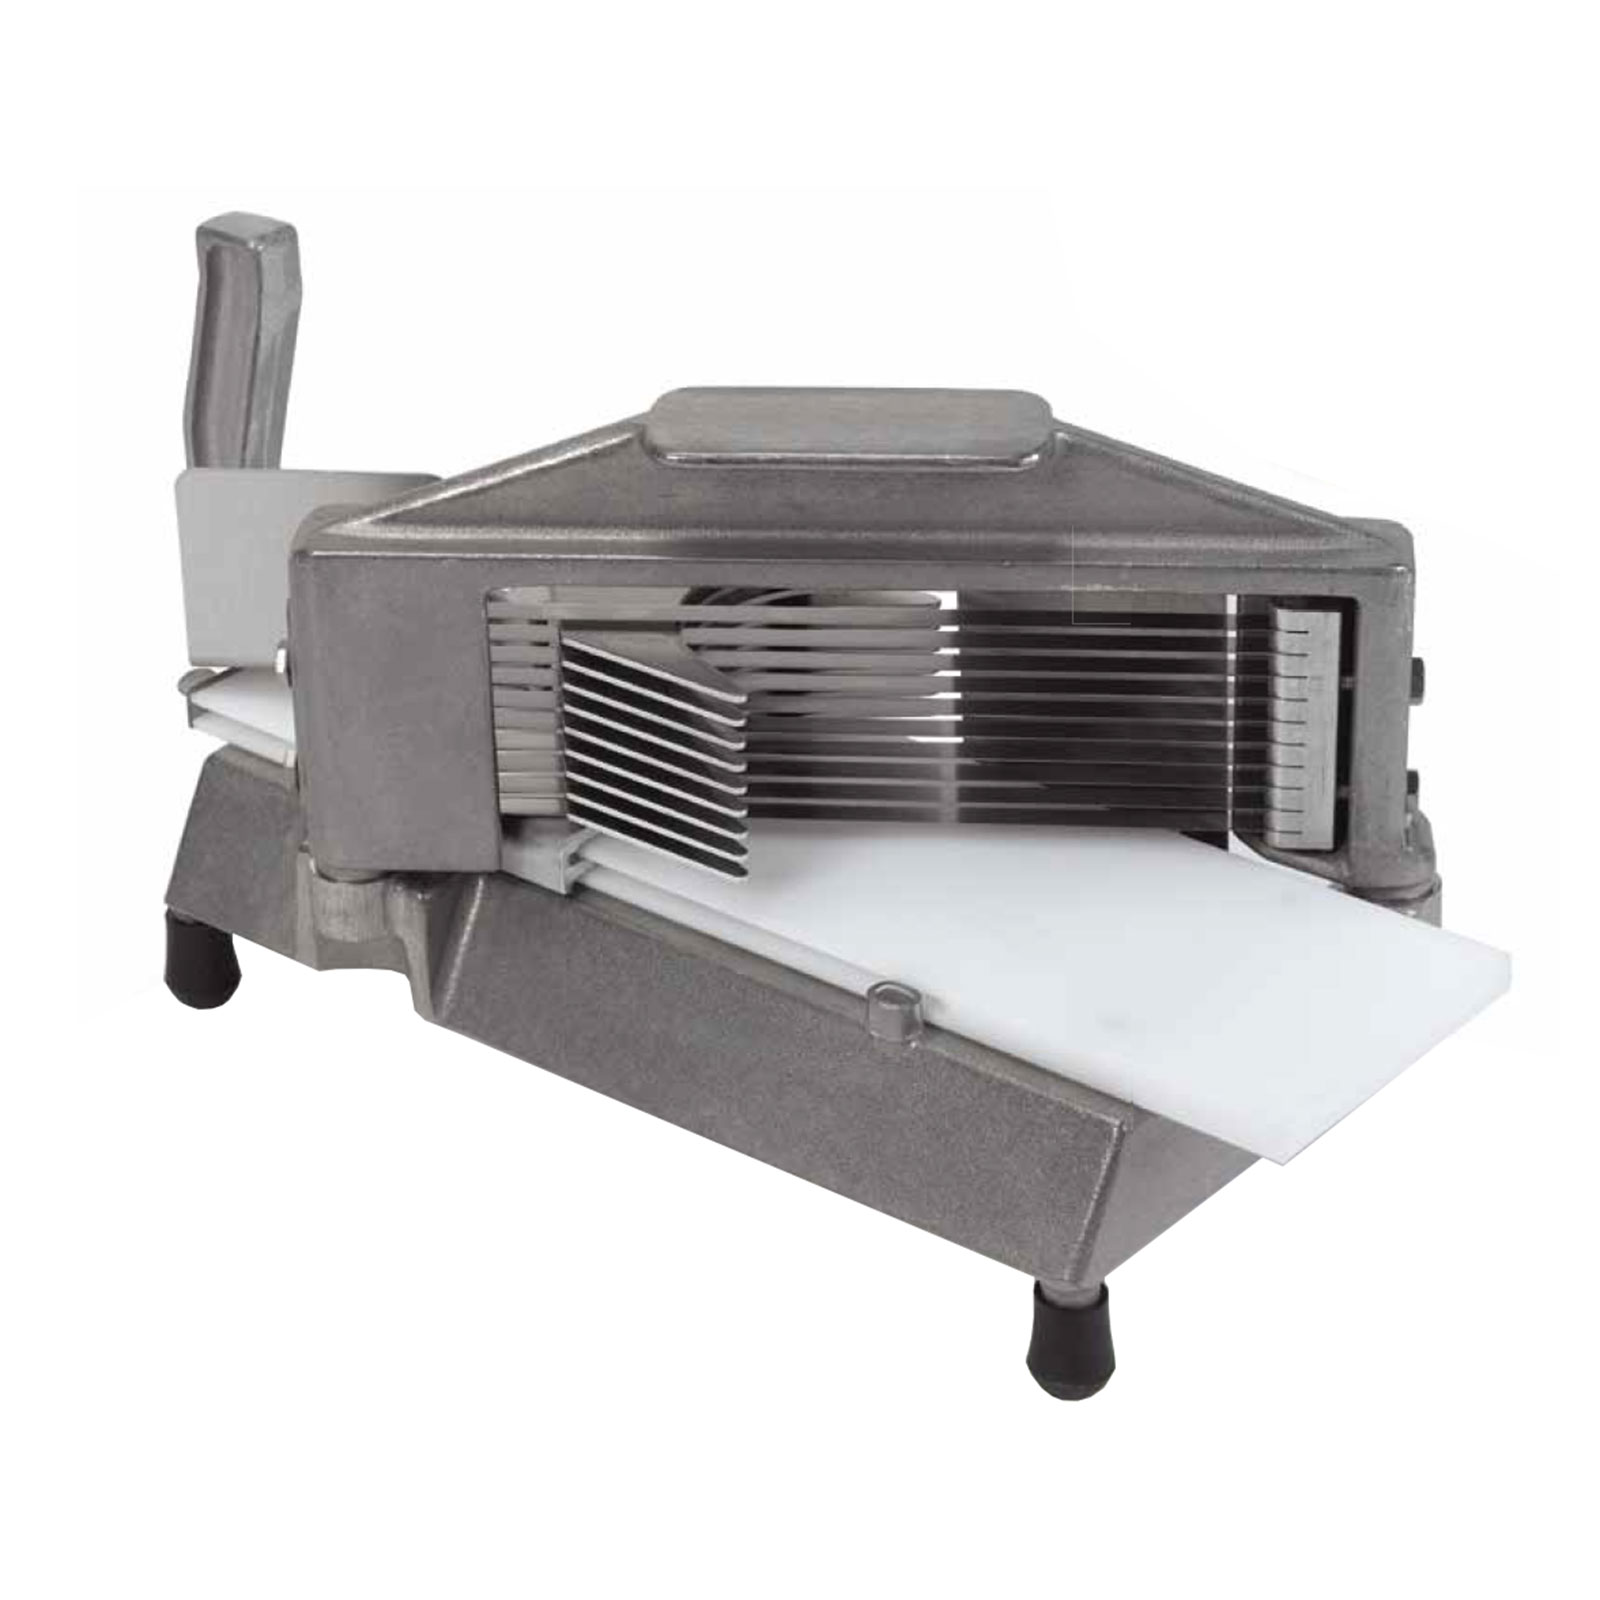 Nemco Food Equipment 55600-7 slicer, tomato